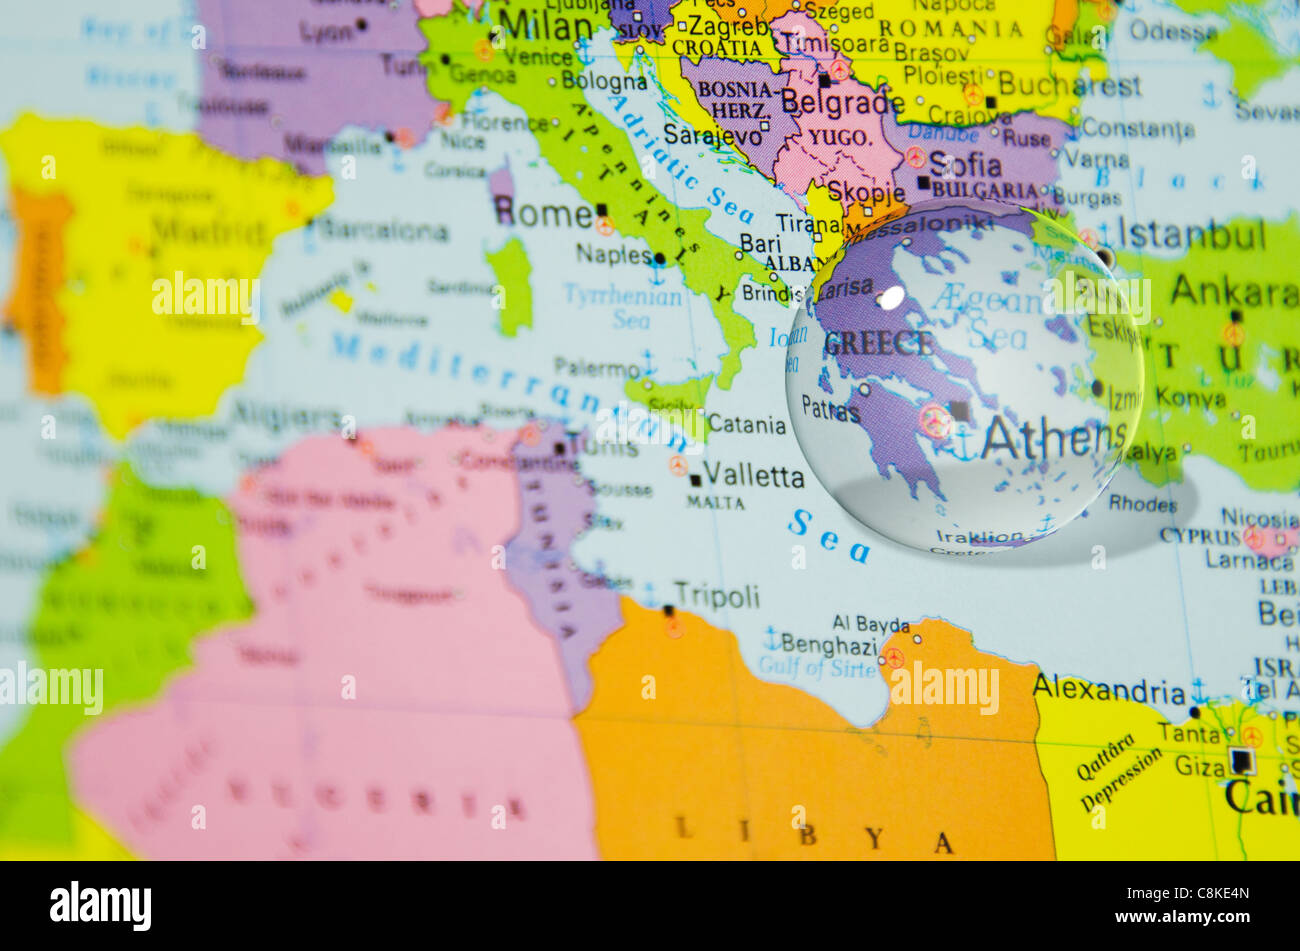 Crystal ball over greece on world map stock photo 39766181 alamy crystal ball over greece on world map gumiabroncs Images